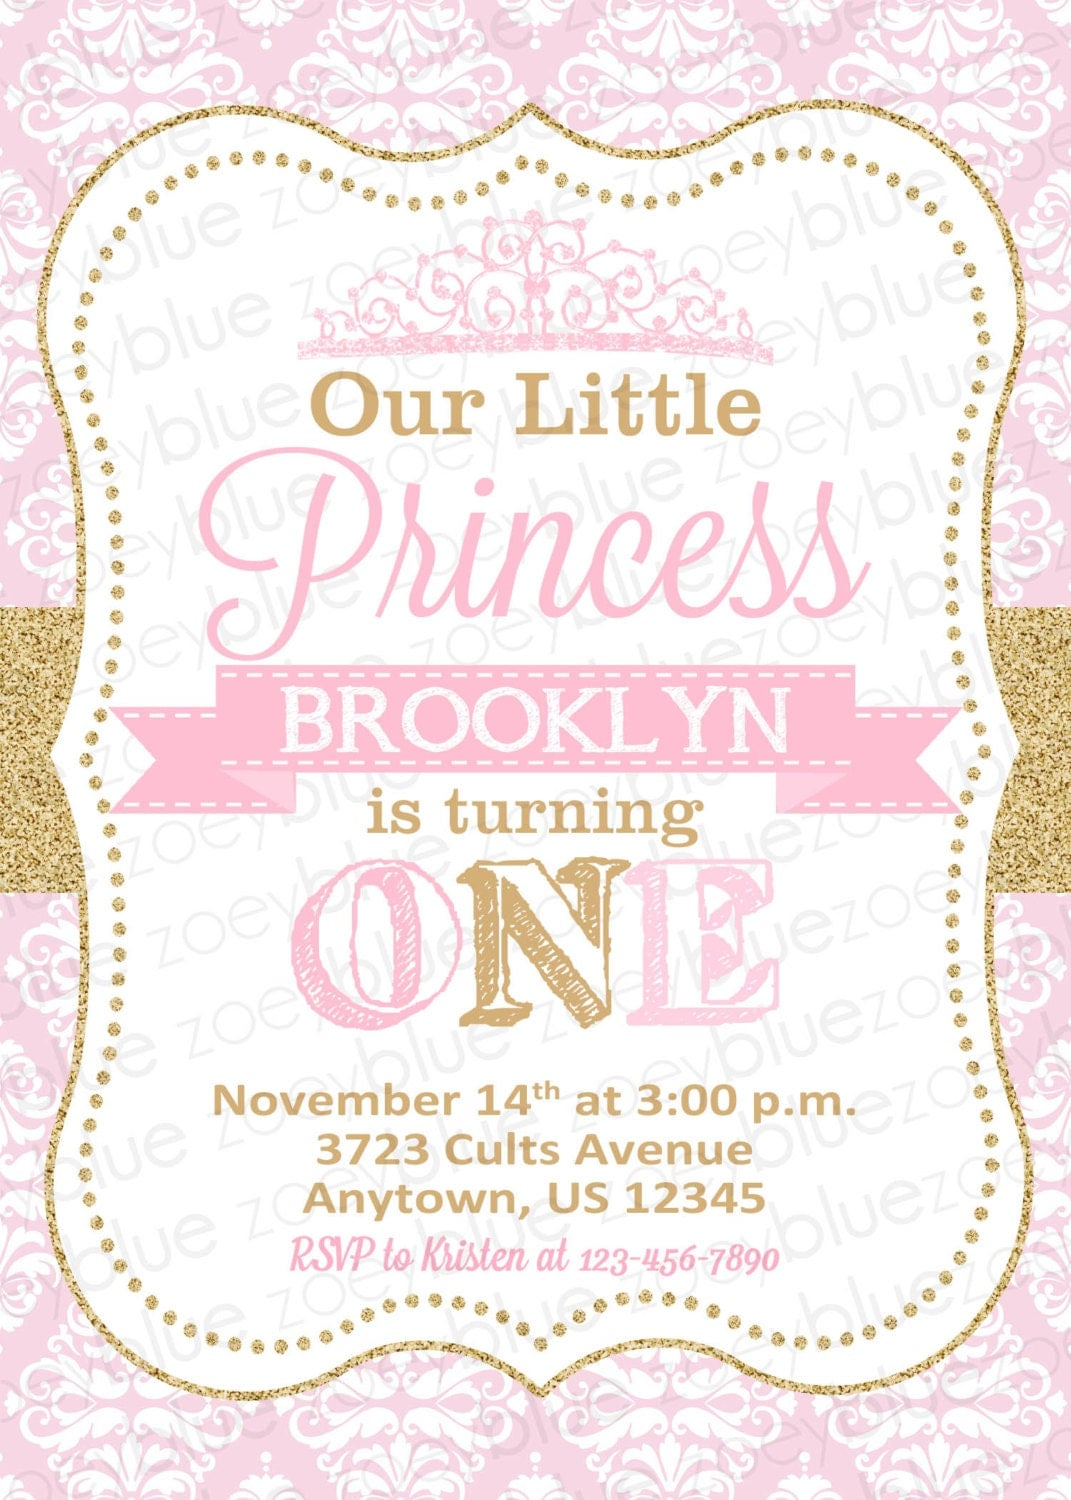 princess birthday invitation princess invitation first birthday princess birthday invitation princess invitation first birthday pink and gold glitter princess invite princess party printable invitation